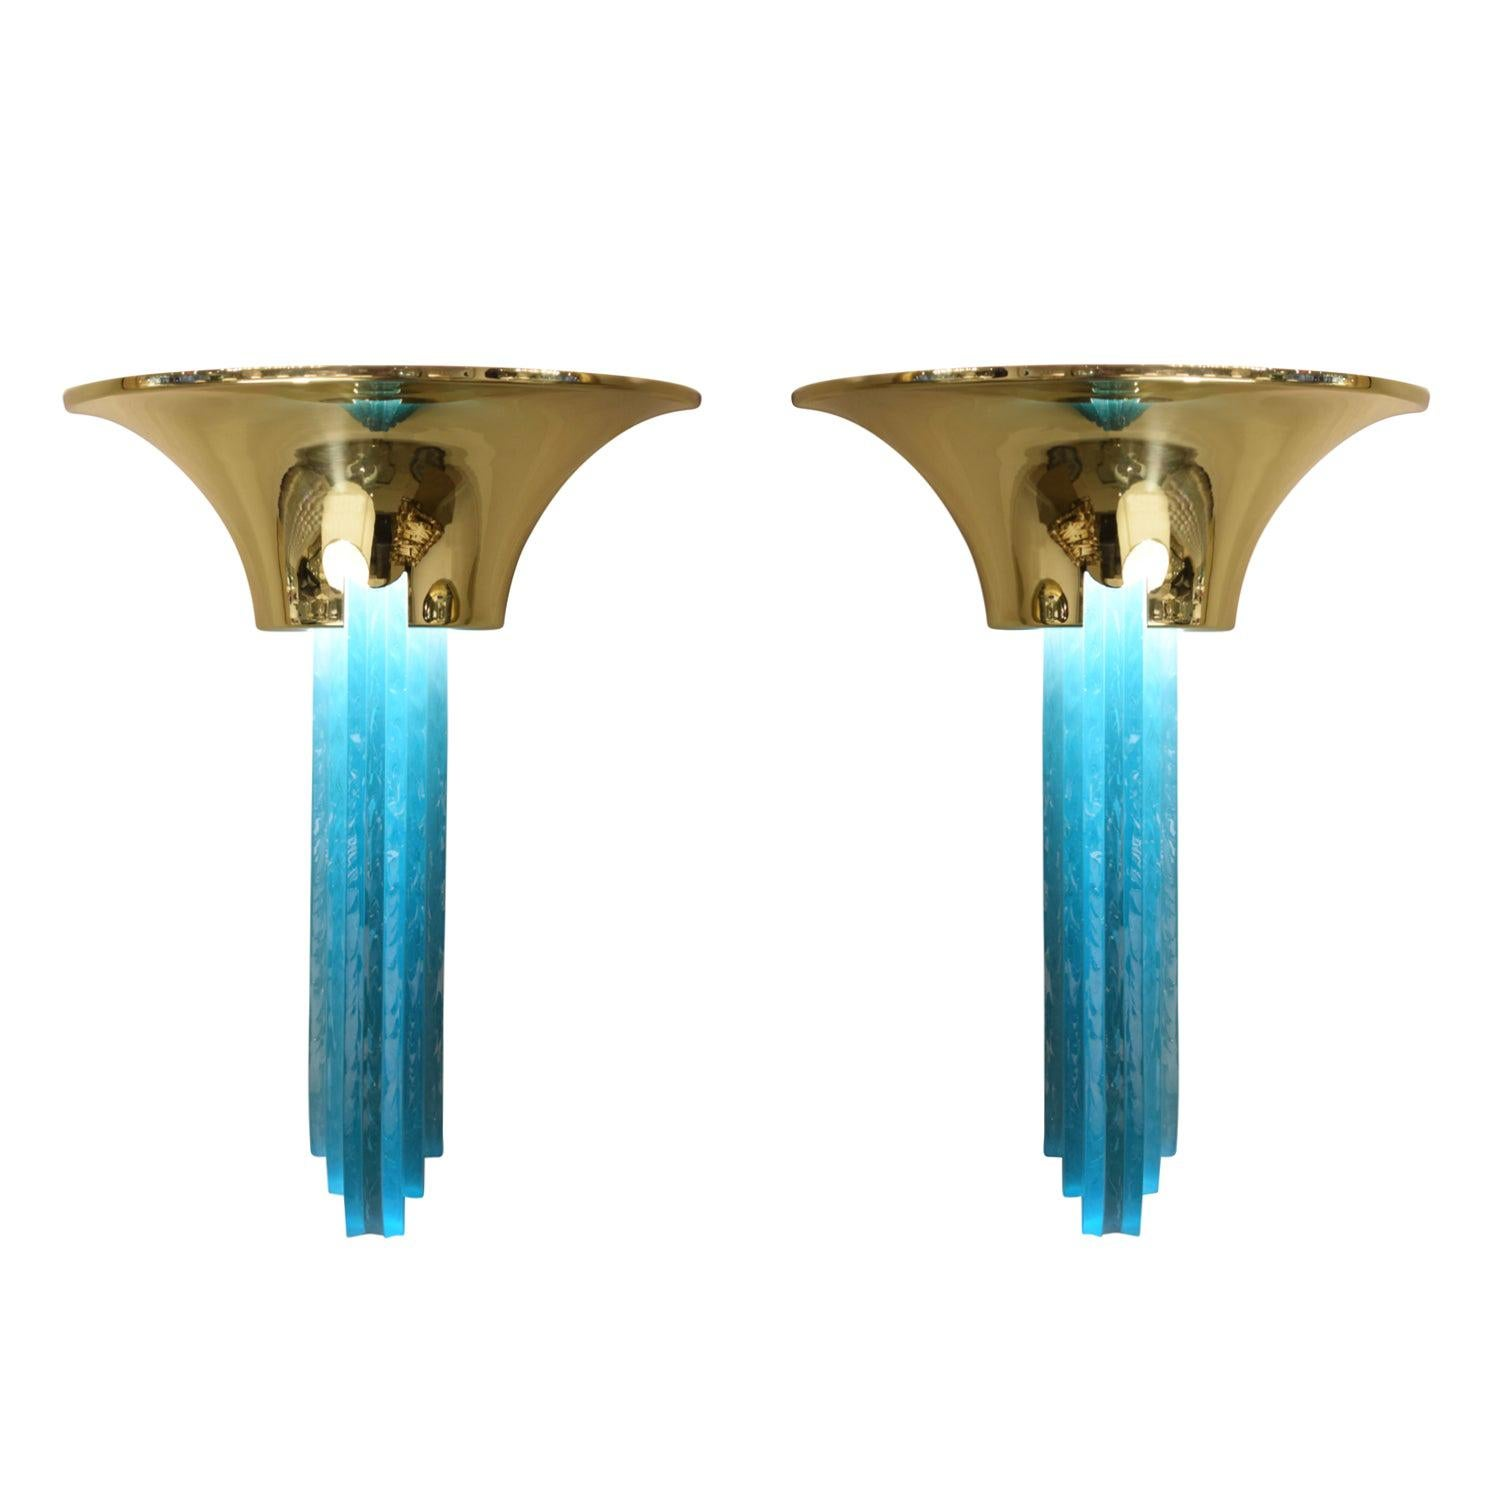 """Karl Springer Pair of """"Purcell Sconces"""" in Brass with Hand-Chipped Glass, 1980s"""